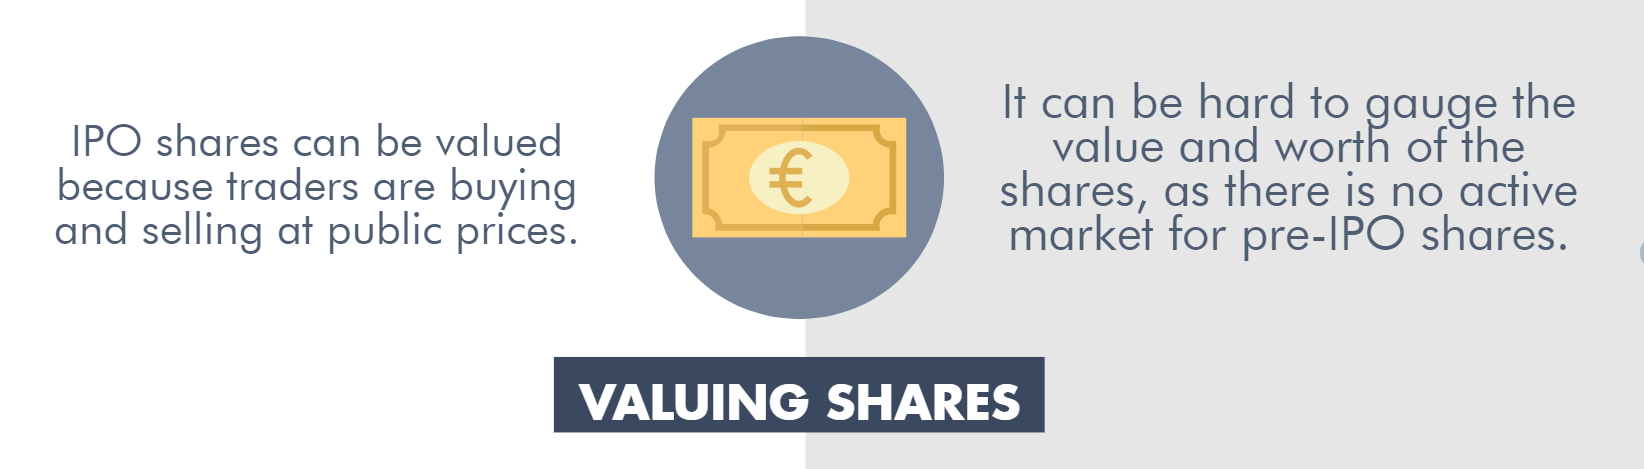 4valueing shares.PNG